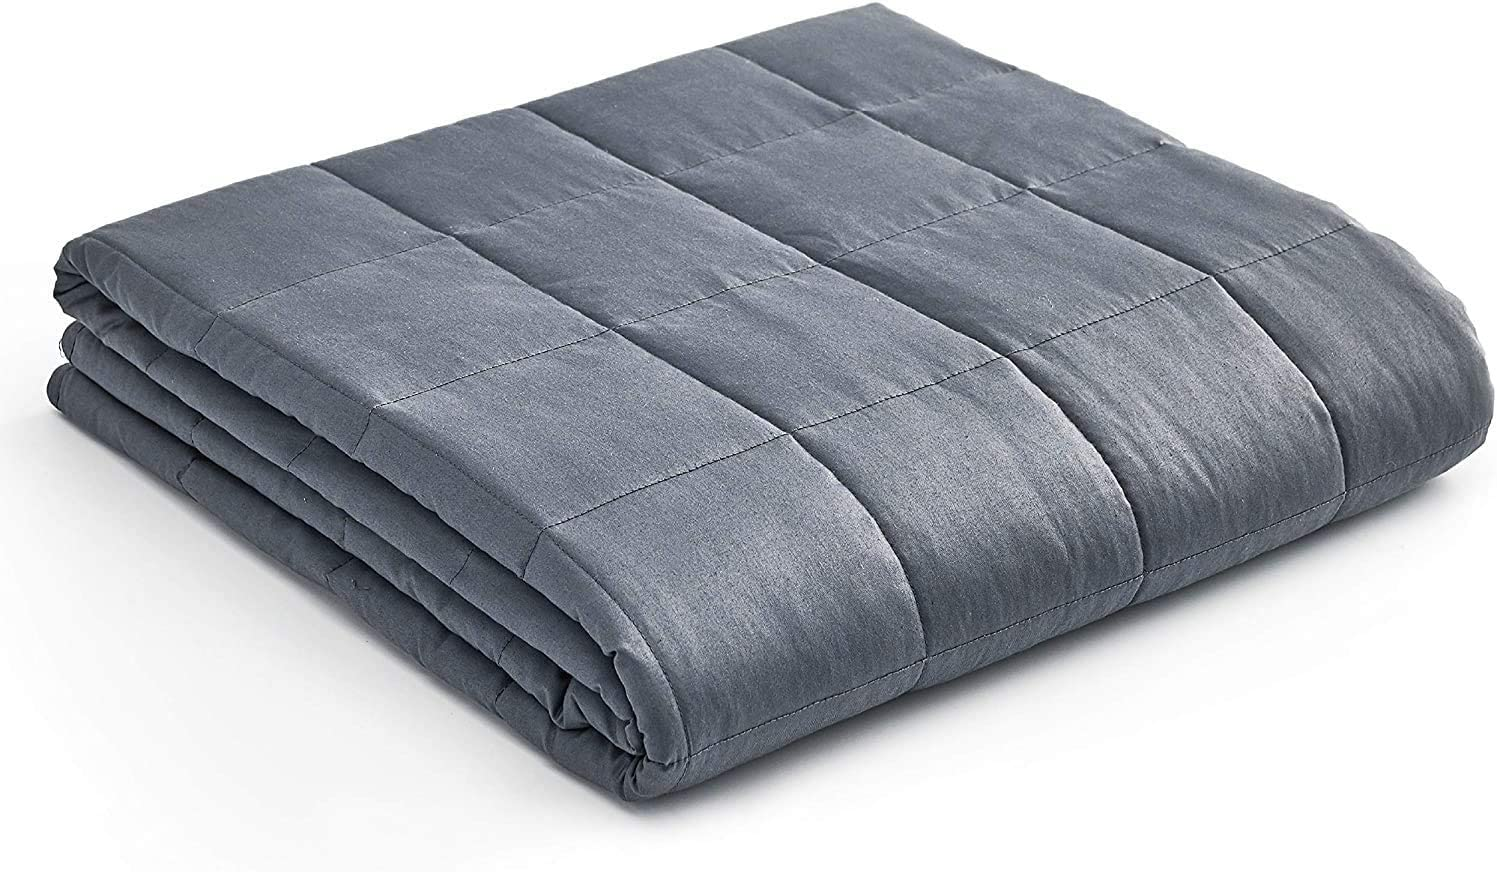 YnM Kids Weighted Blanket — Heavy 100% Oeko-Tex Certified Cotton Material with Premium Glass Beads (Dark Grey, 36''x48'' 5lbs), Suit for One Person(~40lb) Use on Twin Bed